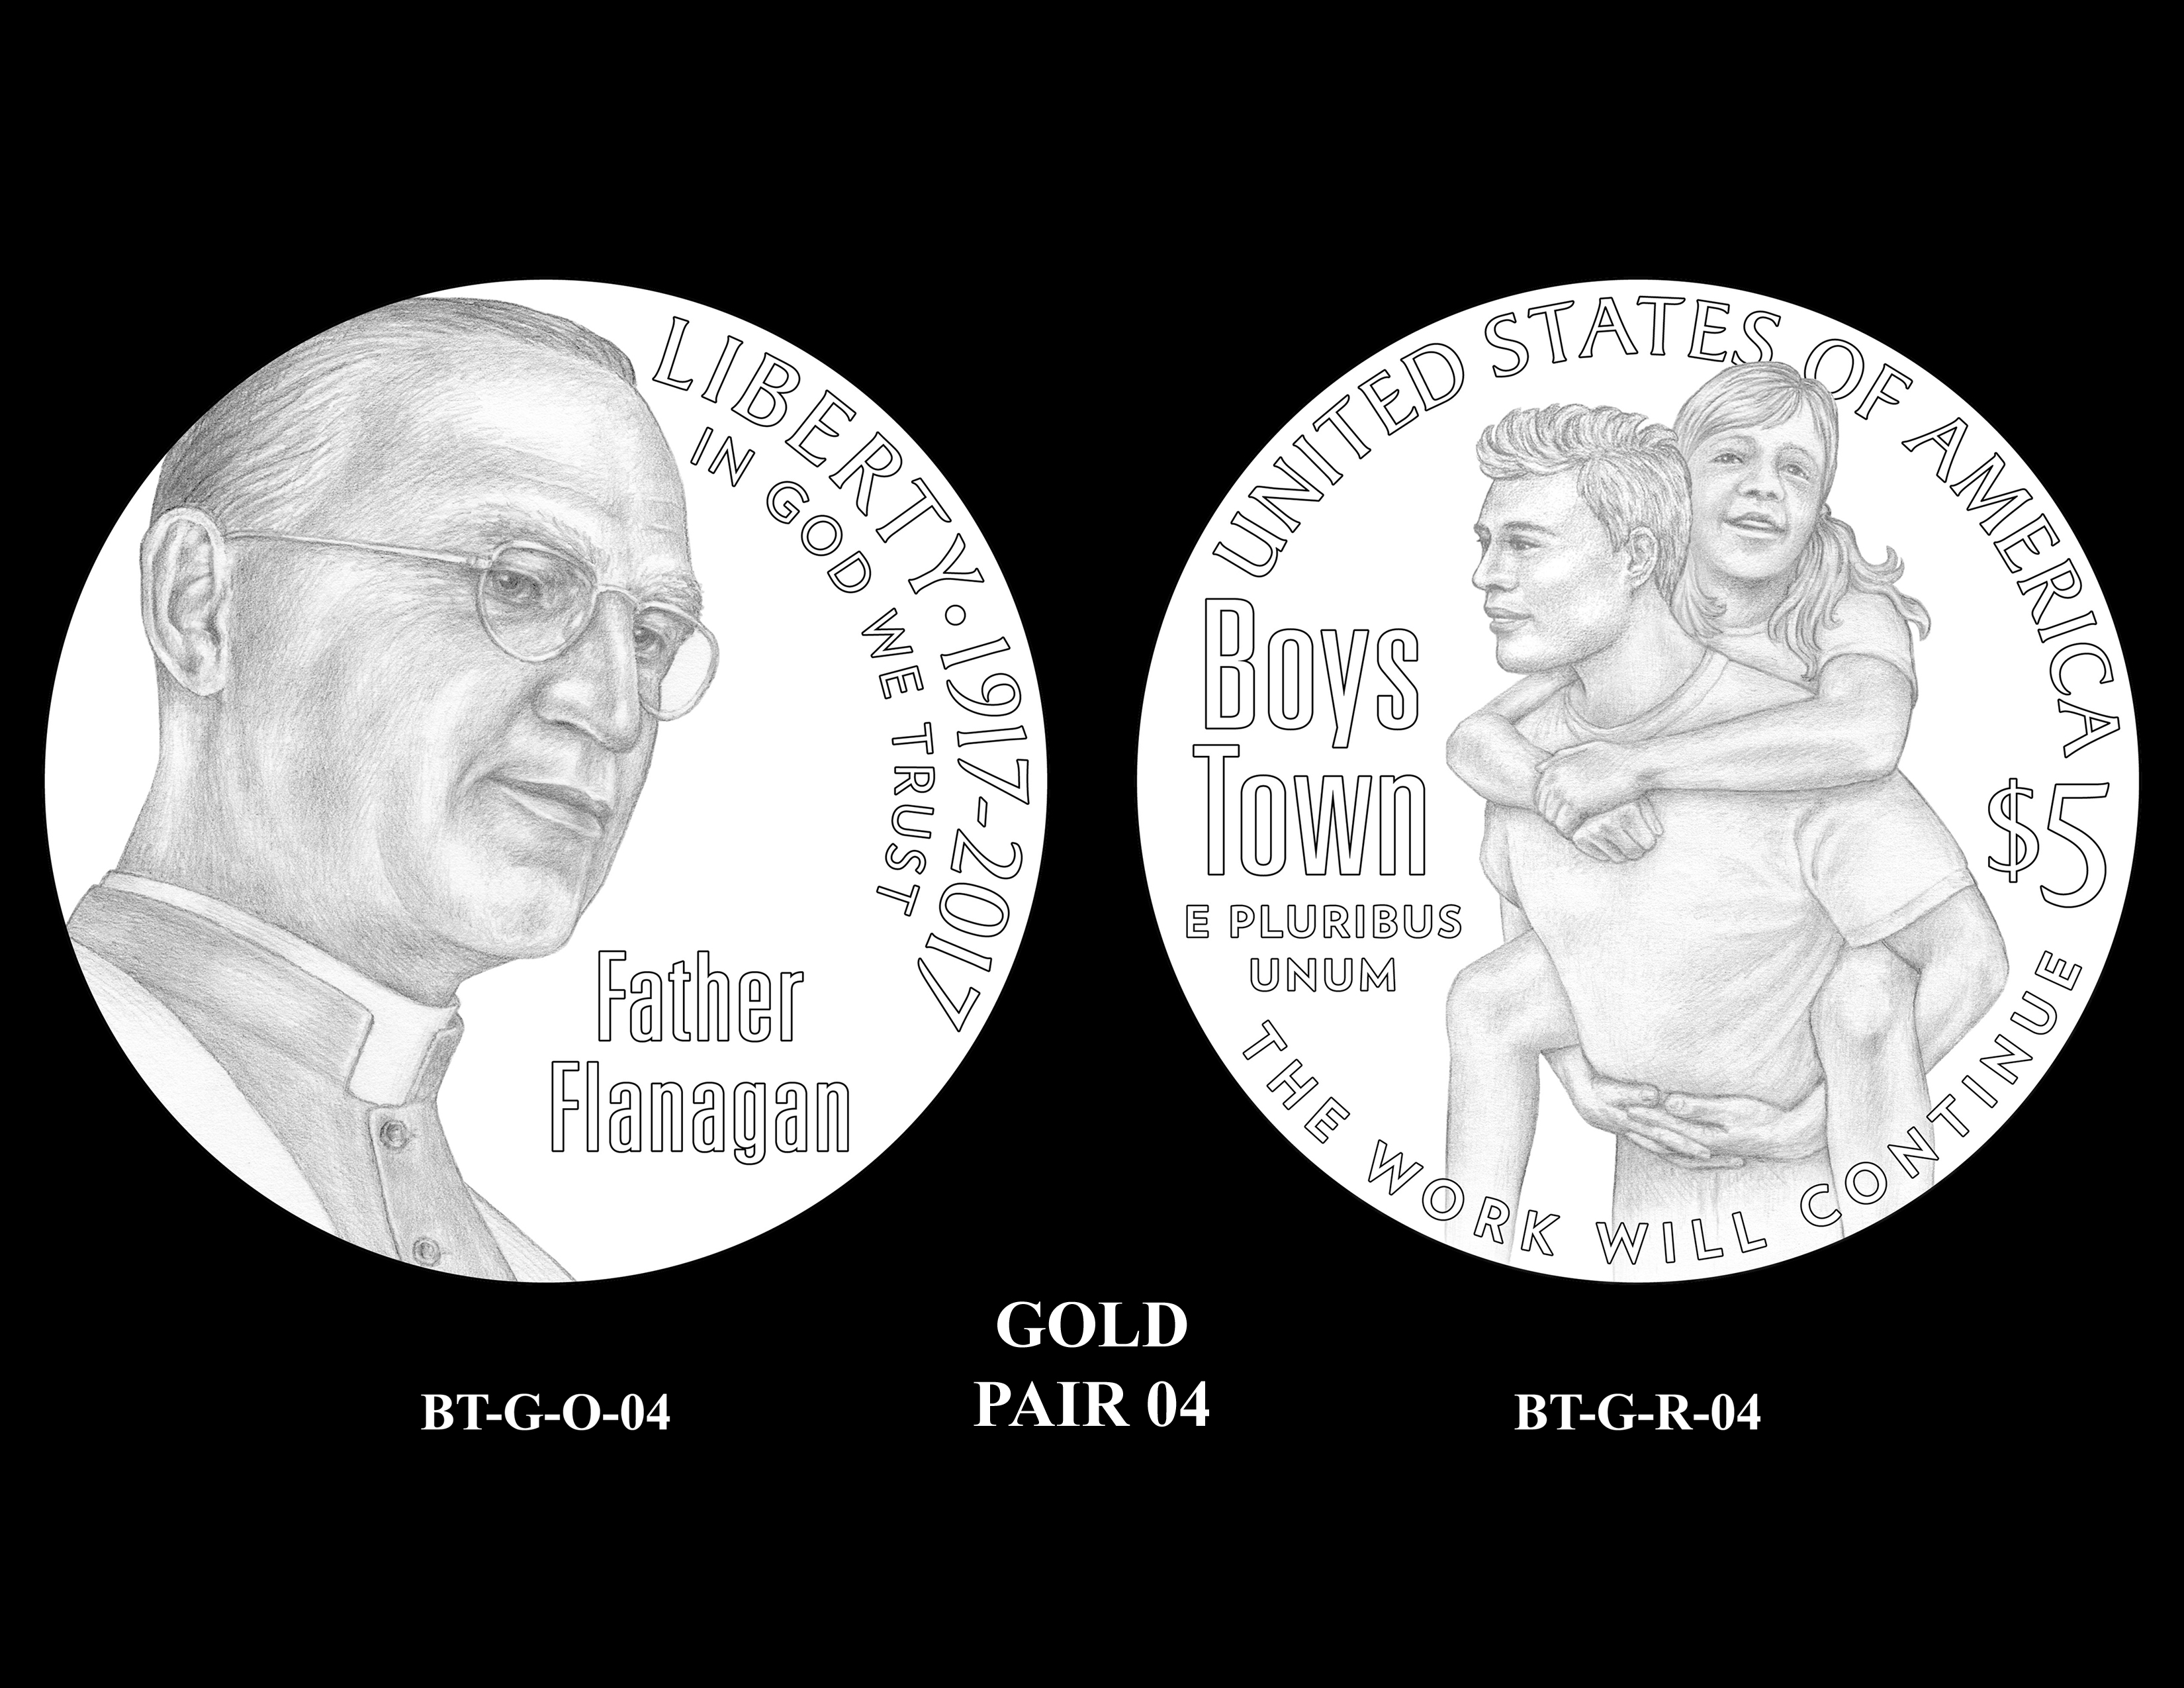 Gold-Pair-04 -- 2017 Boystown Centennial Commemorative Coin  Program